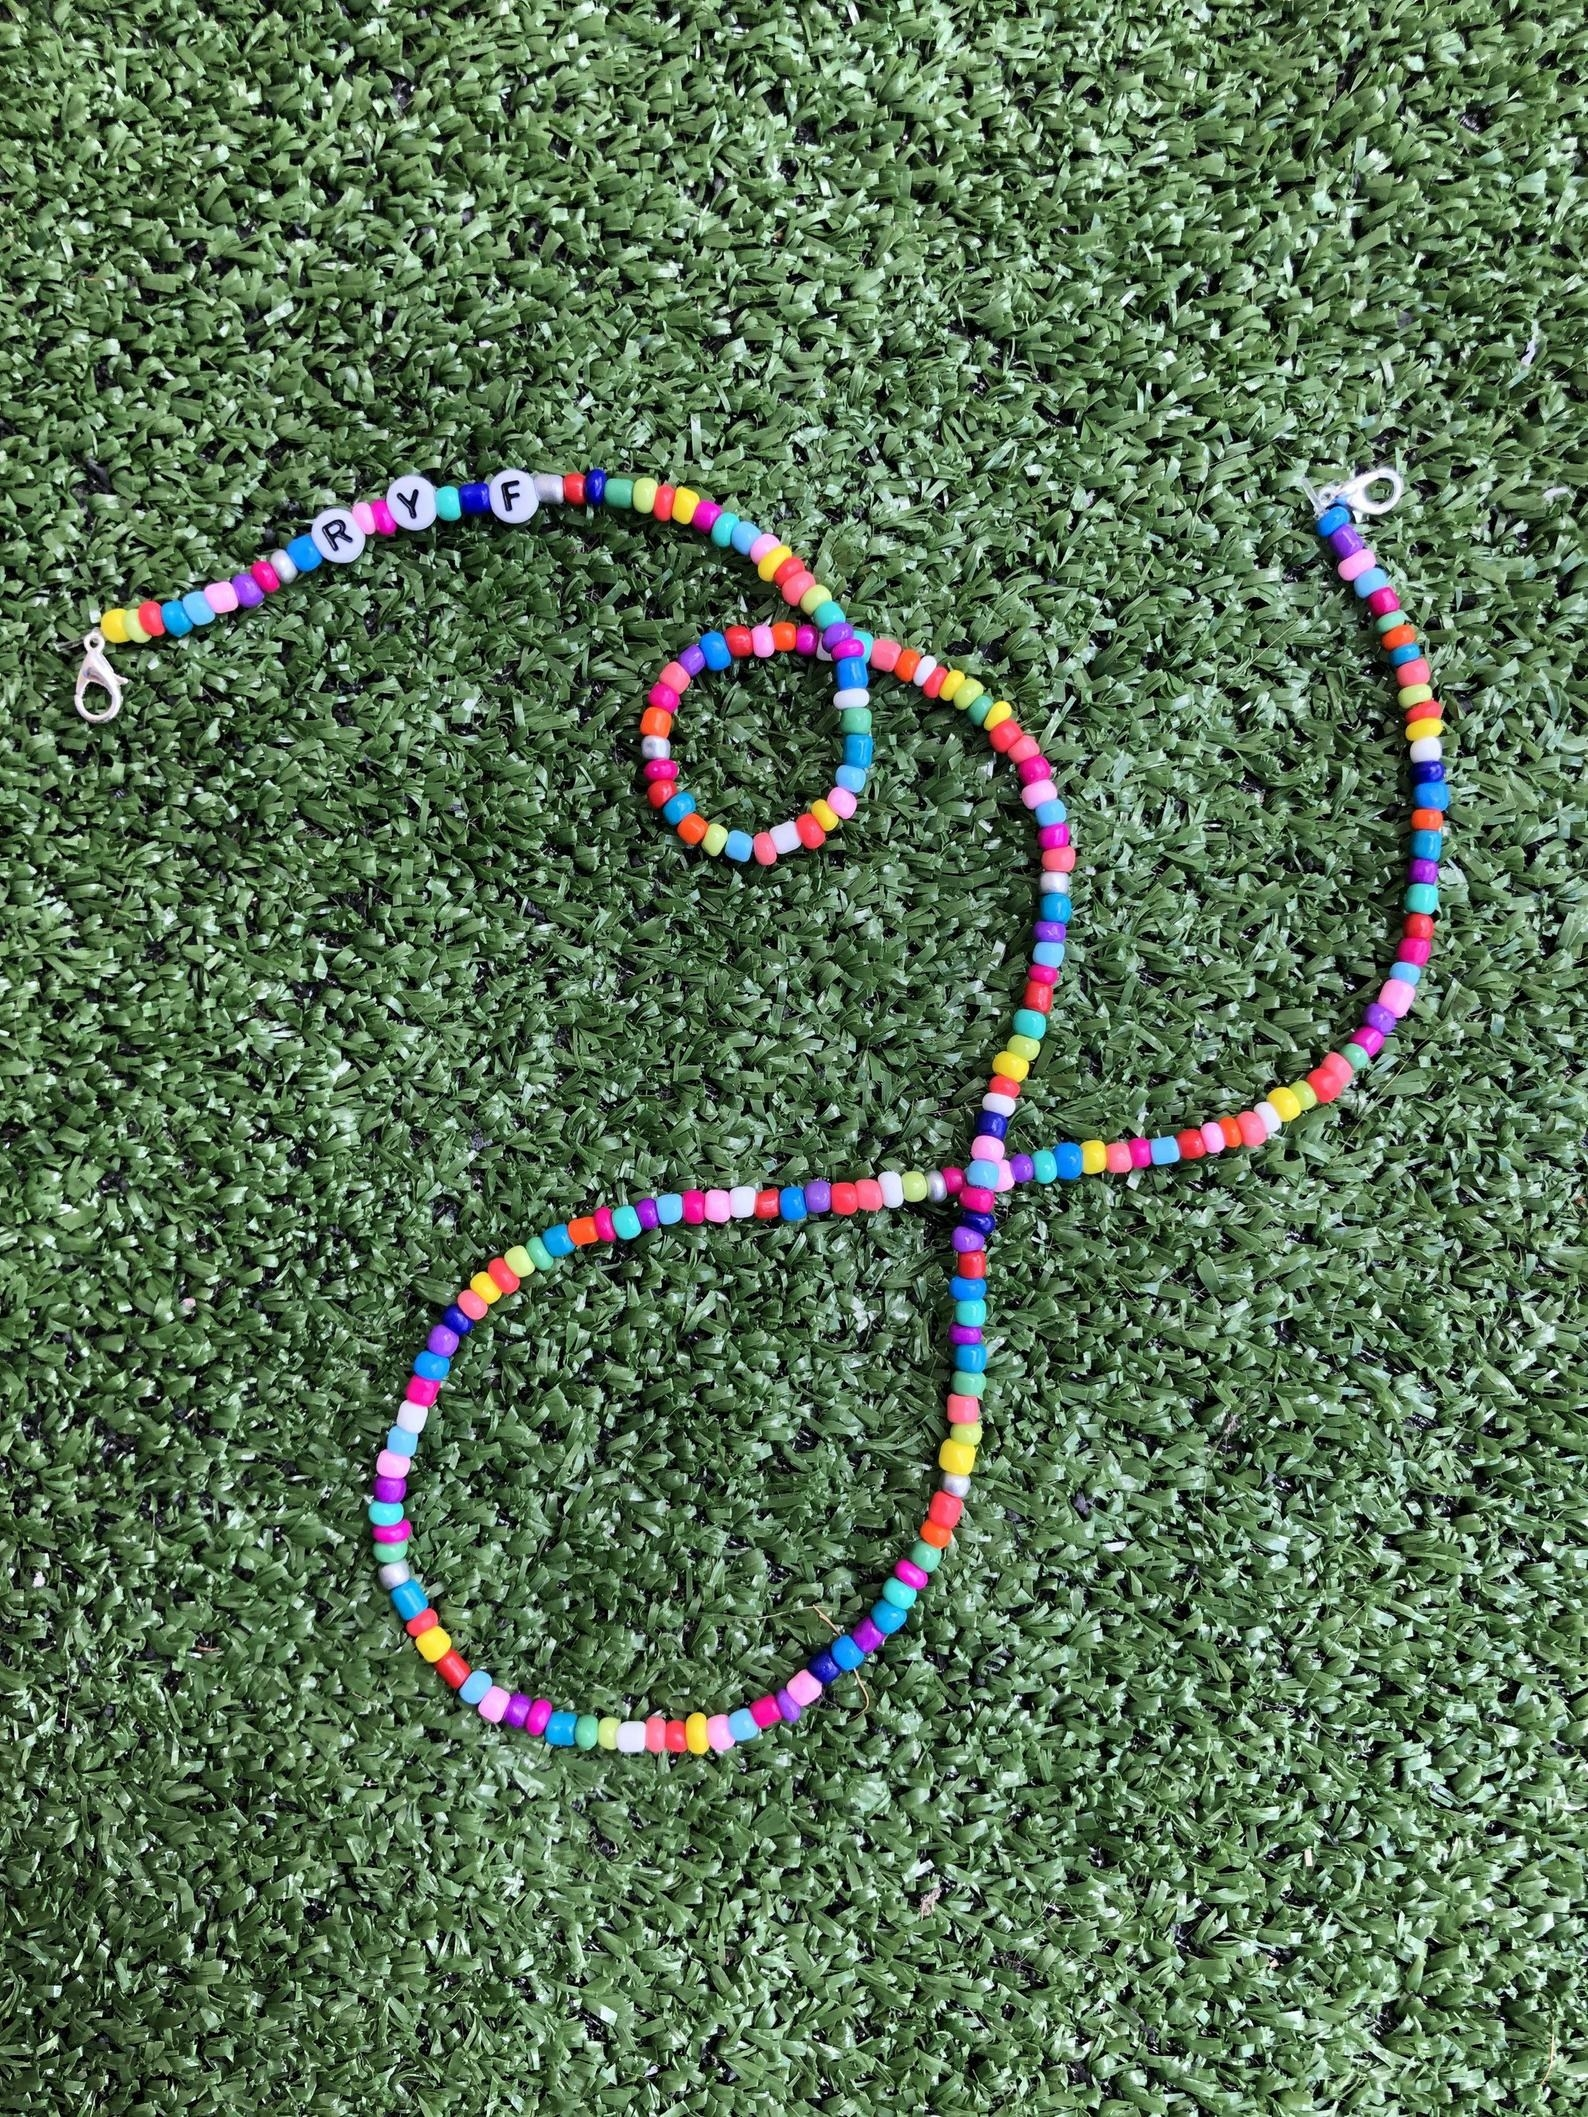 Rainbow beaded face mask chain with three beads that have letters monogrammed on it